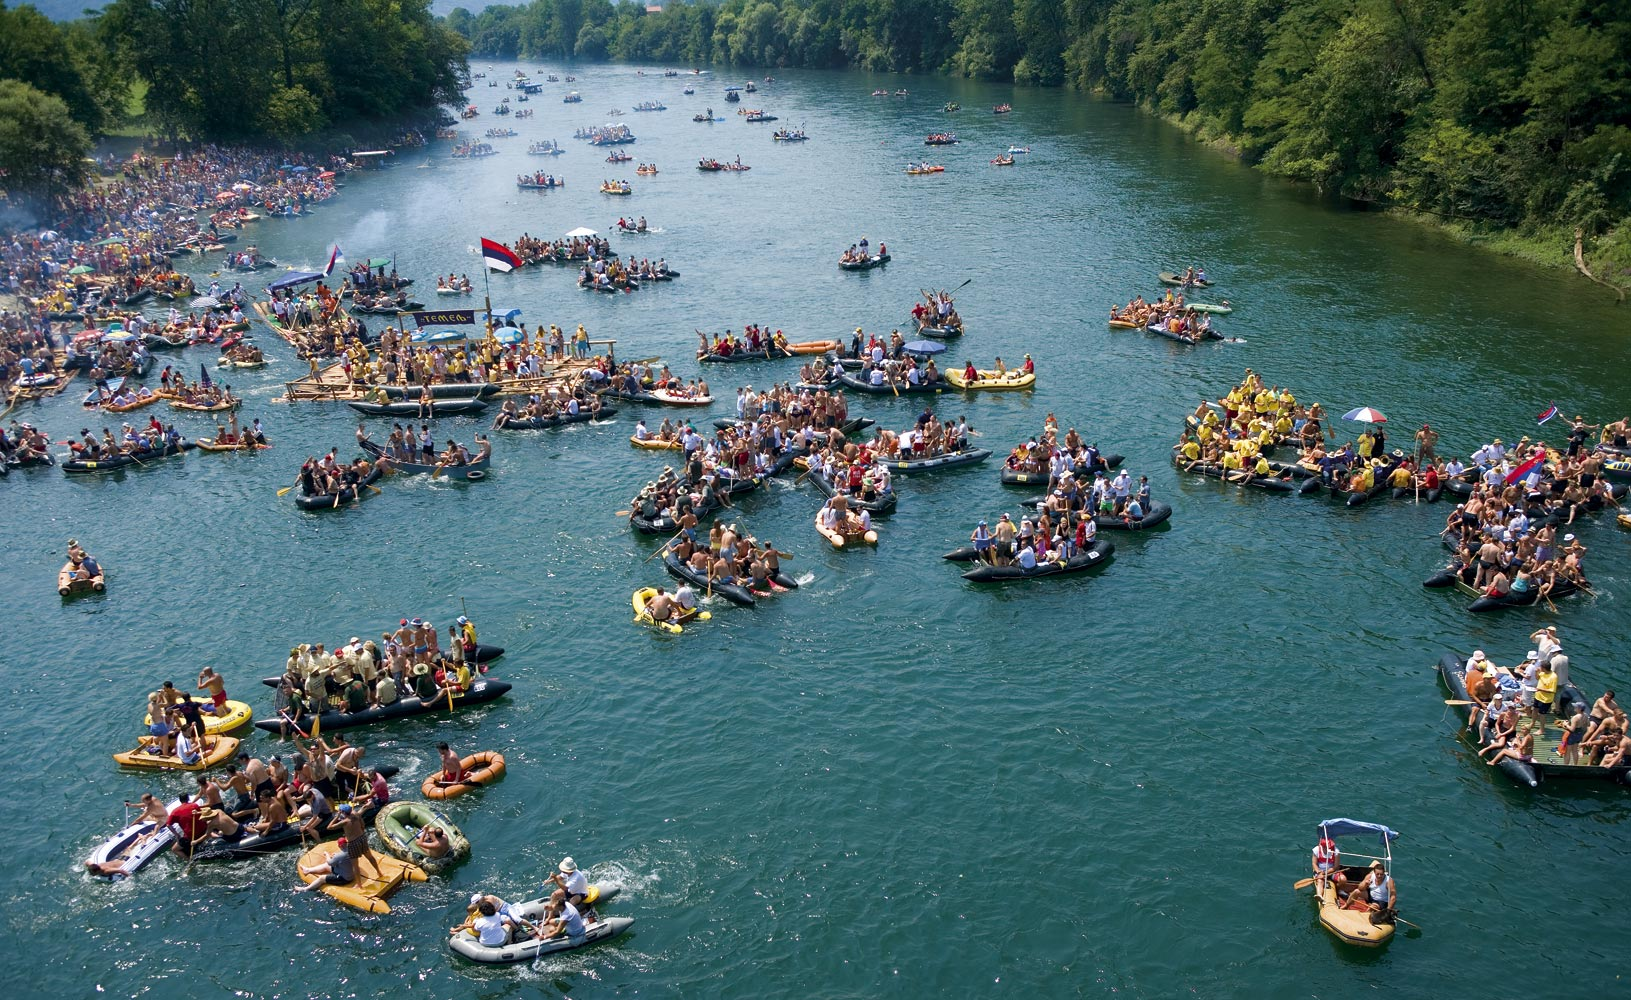 Drina Regatta, an unforgettable experience on the river of the emerald color